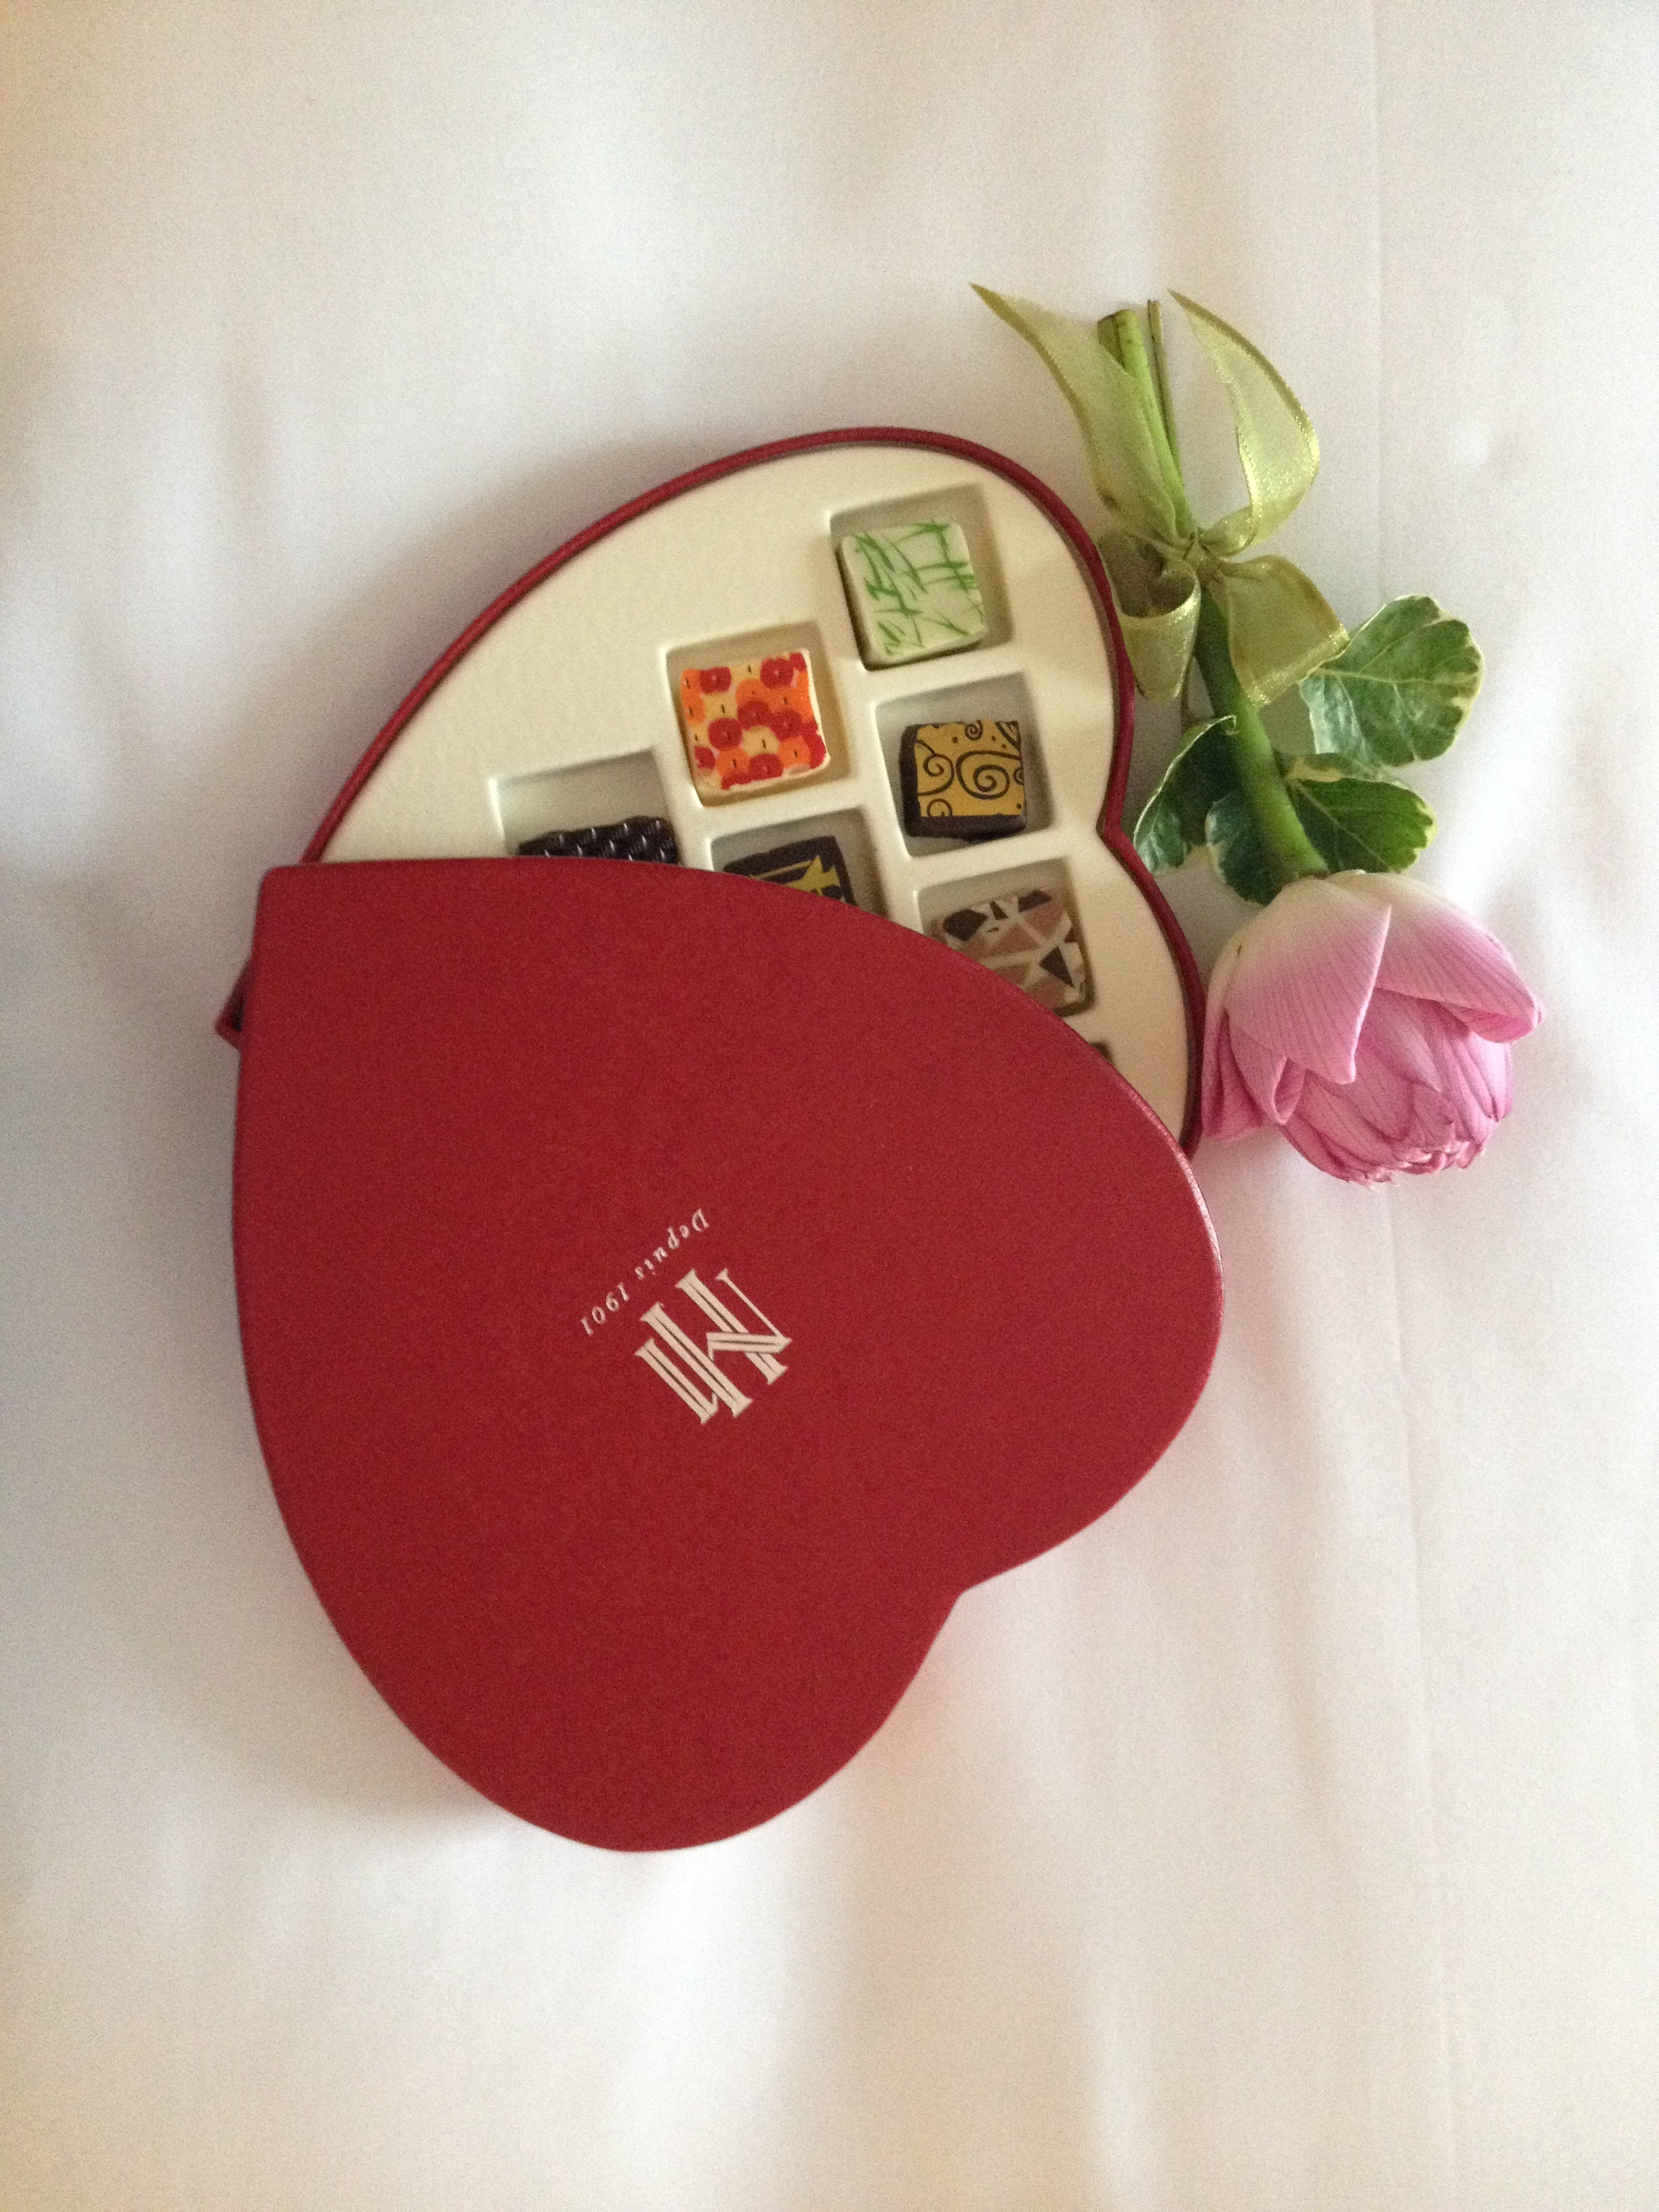 Chocolates In Red Box And Lotus Flower Free Image